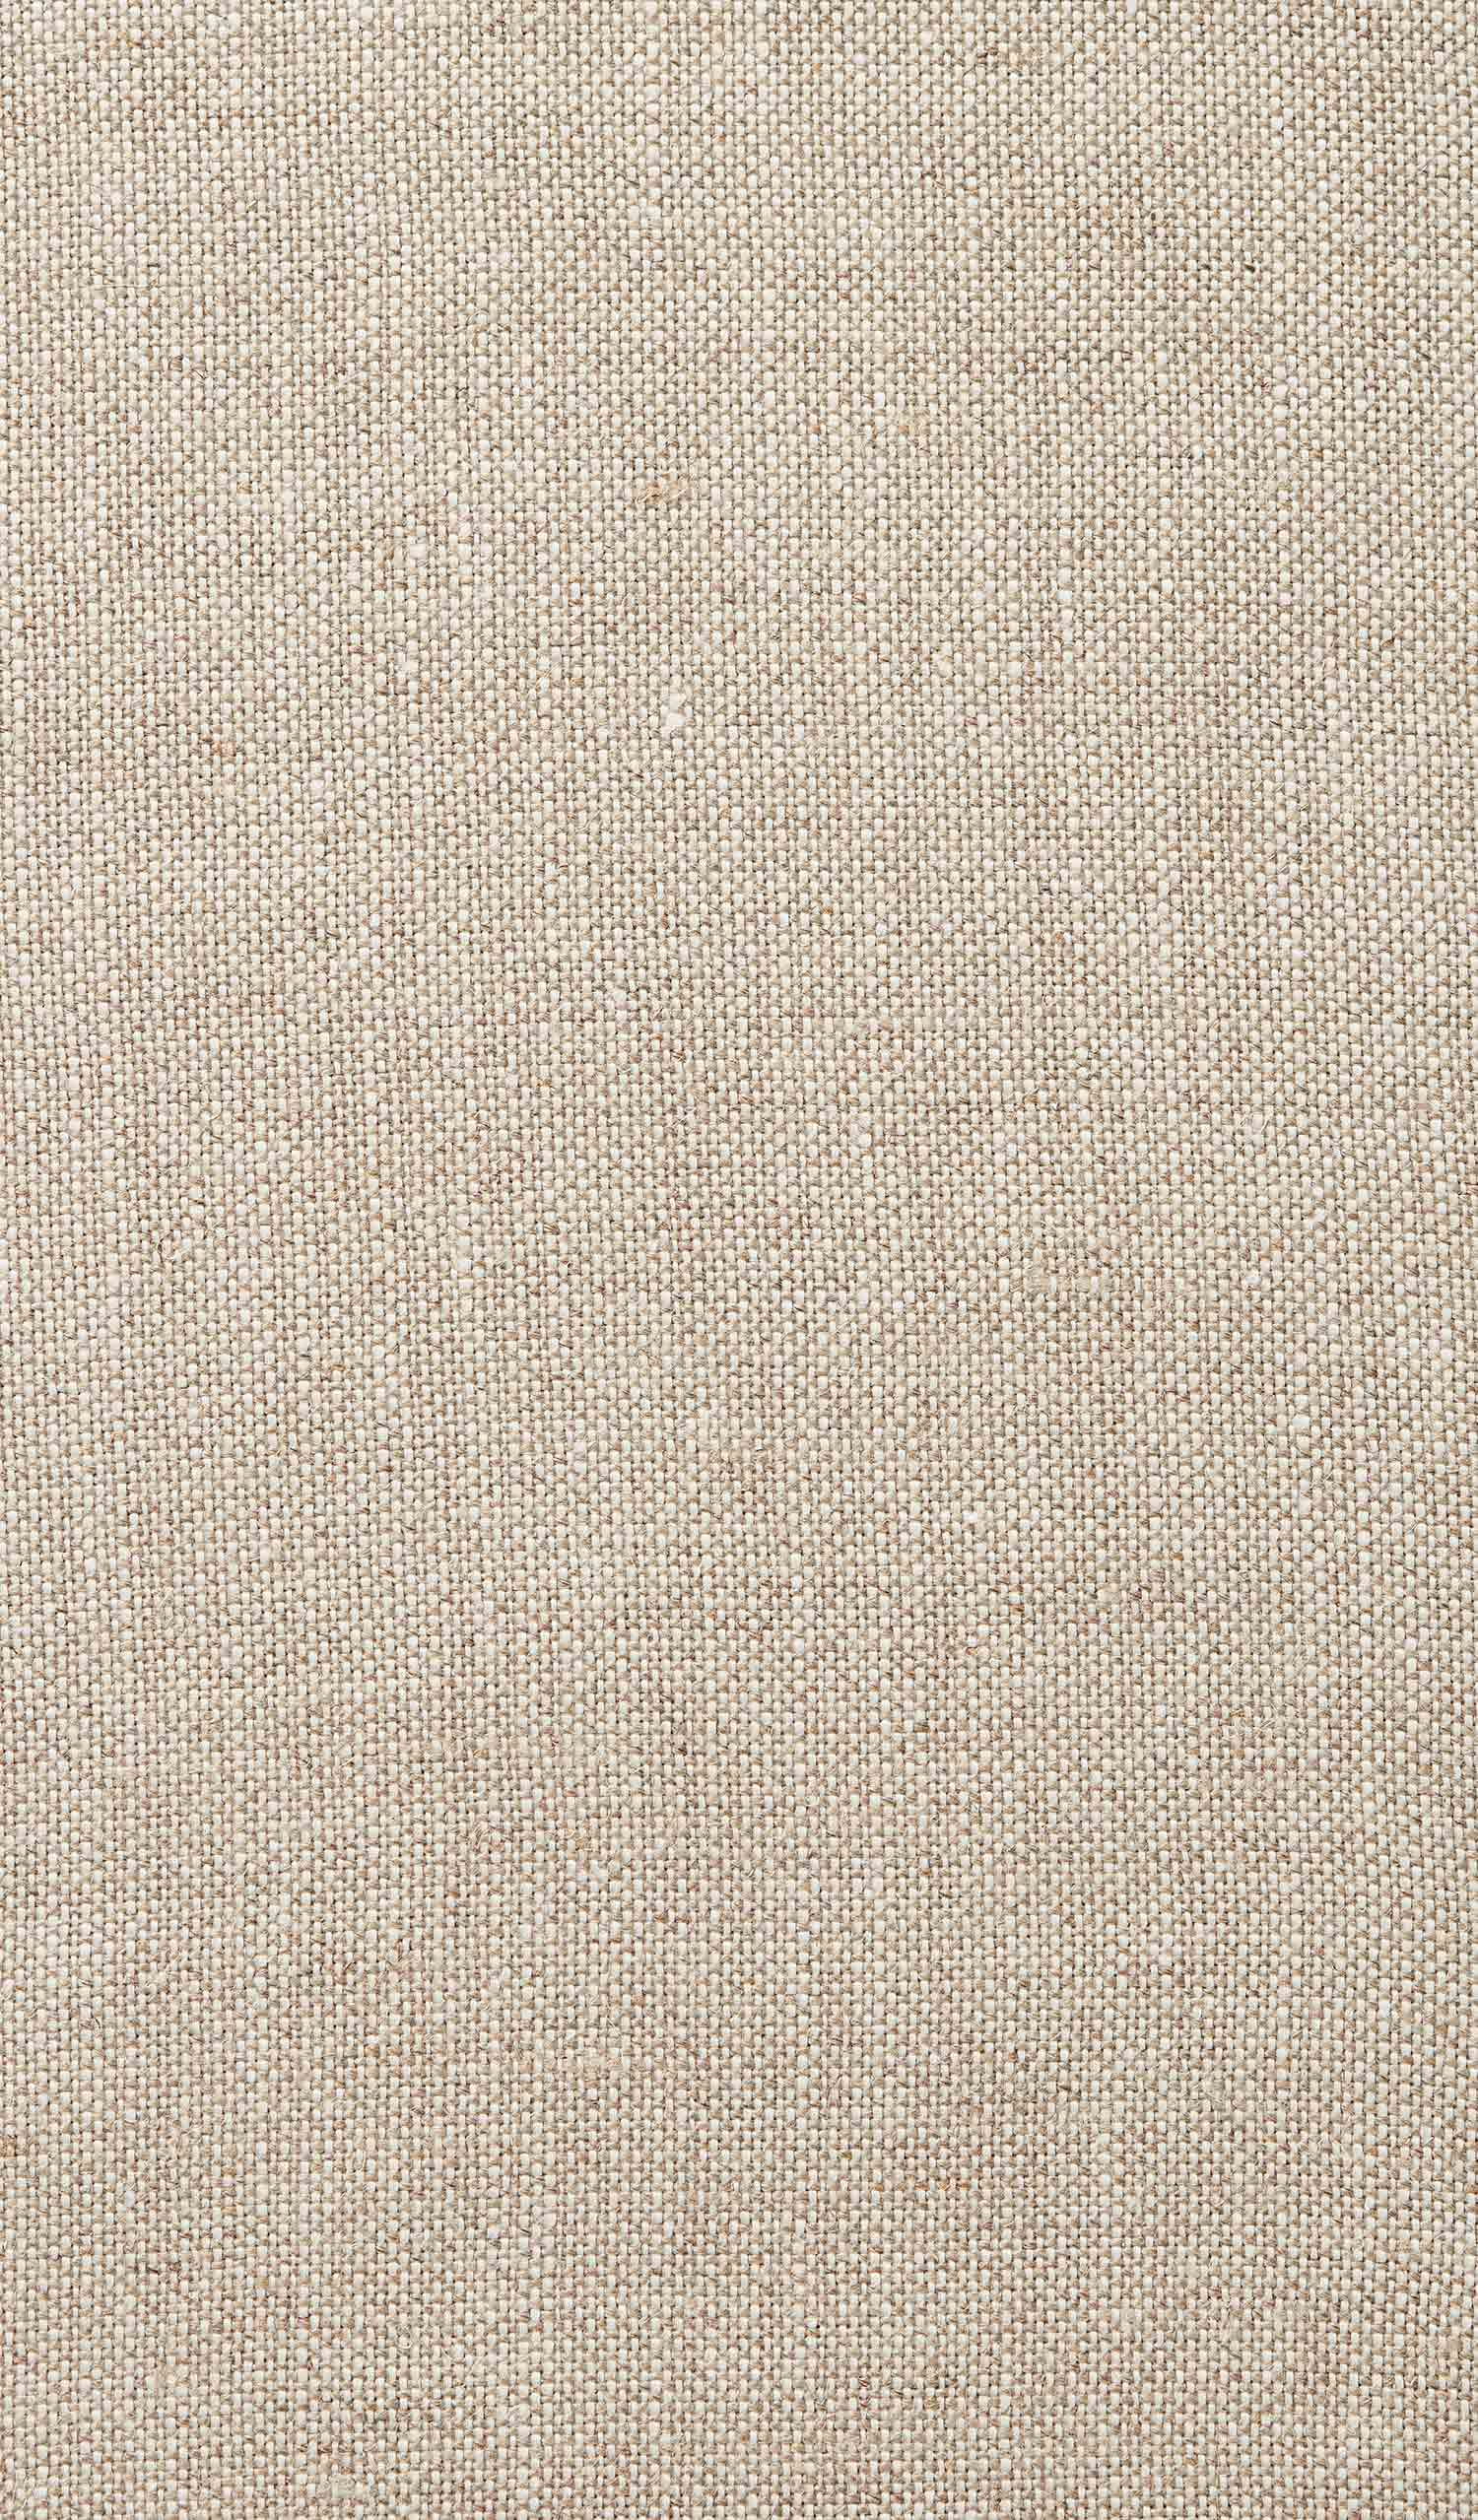 swatch of linen casual oatmeal